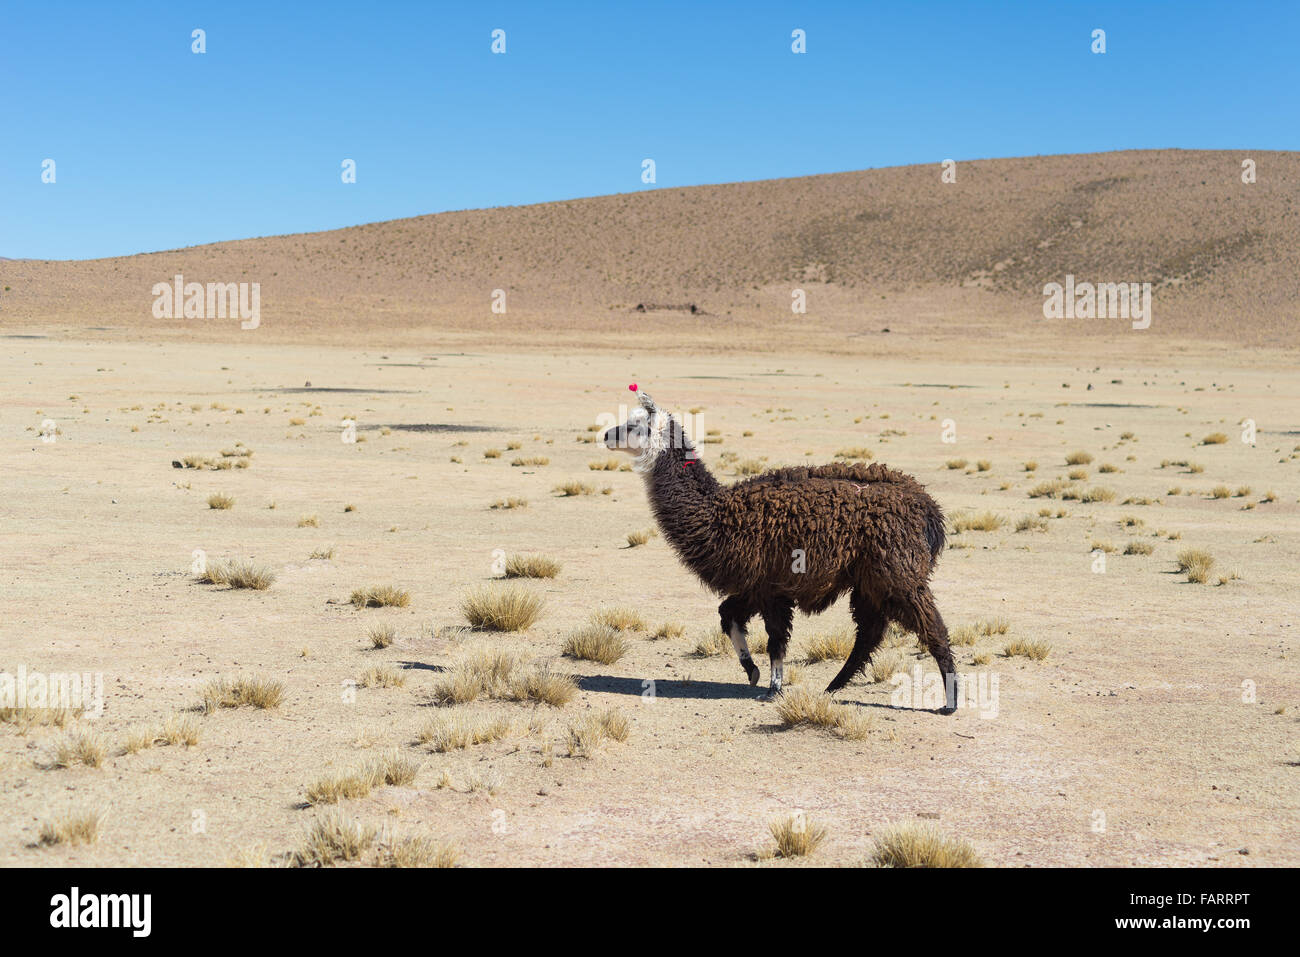 One single llama on the Andean highland in Bolivia. Adult animal galloping in desert land. Side view. - Stock Image